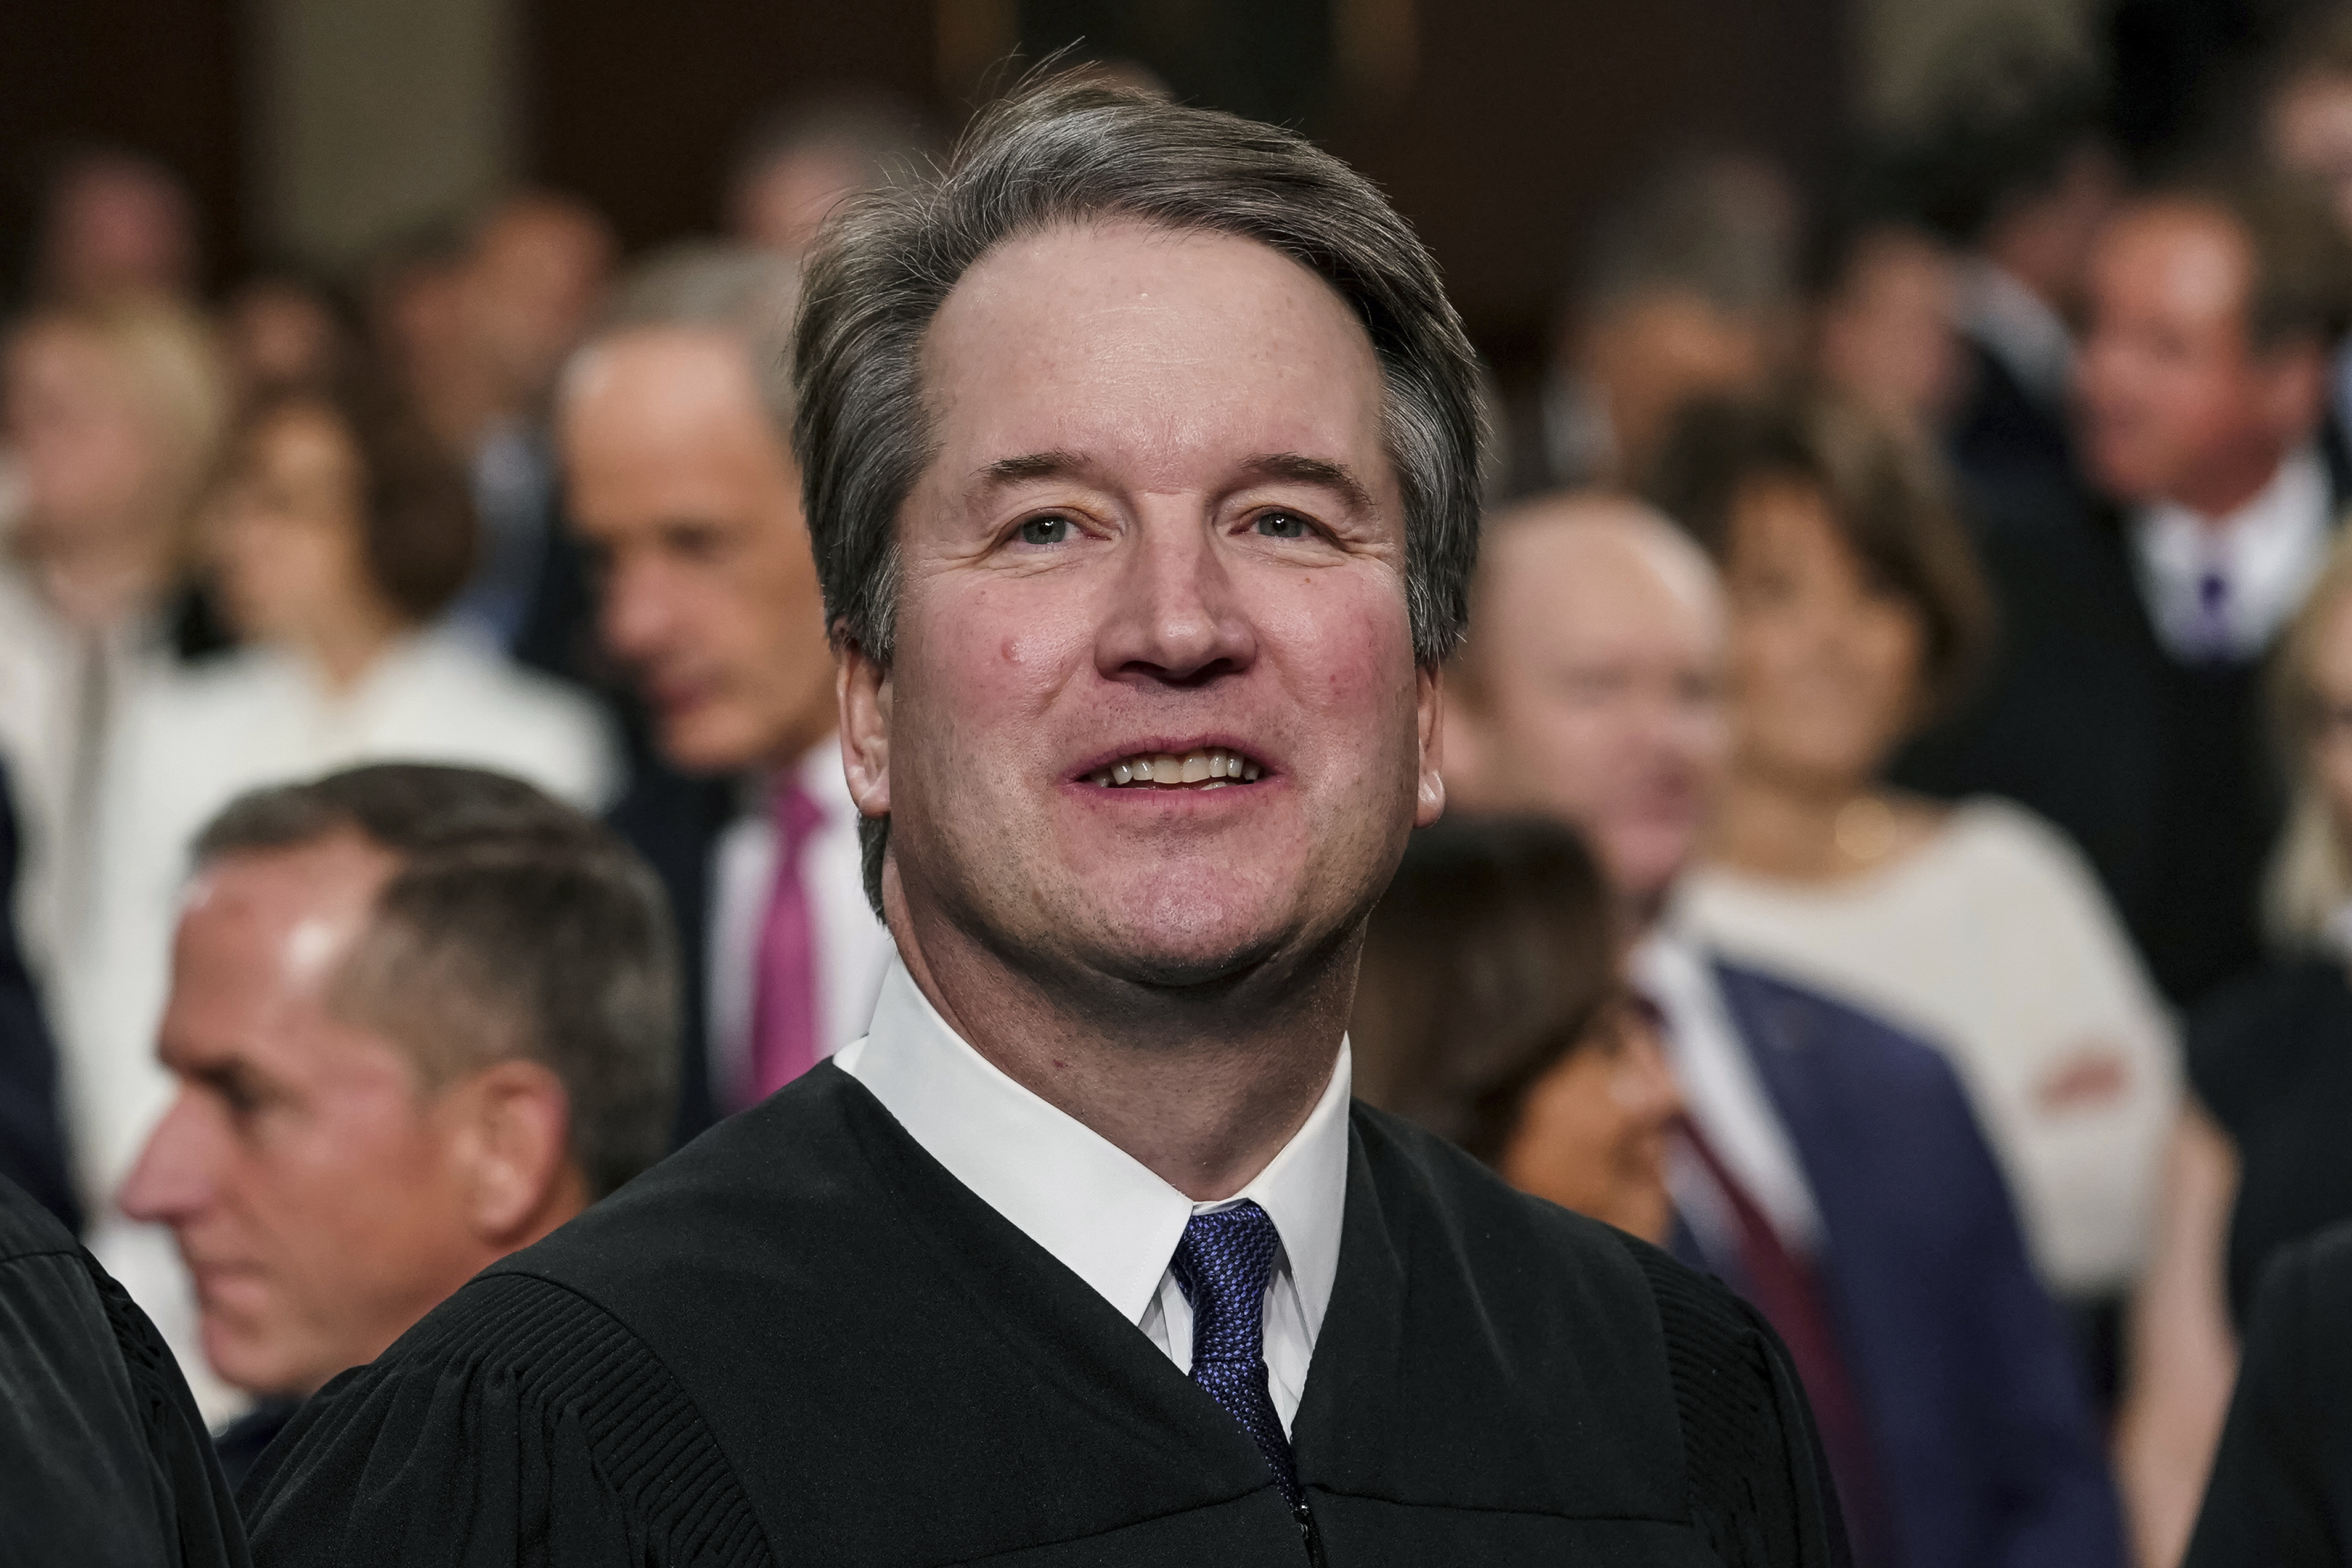 Bogus reporting on Kavanaugh example why support for New York Times, other media dwindling (Letters)